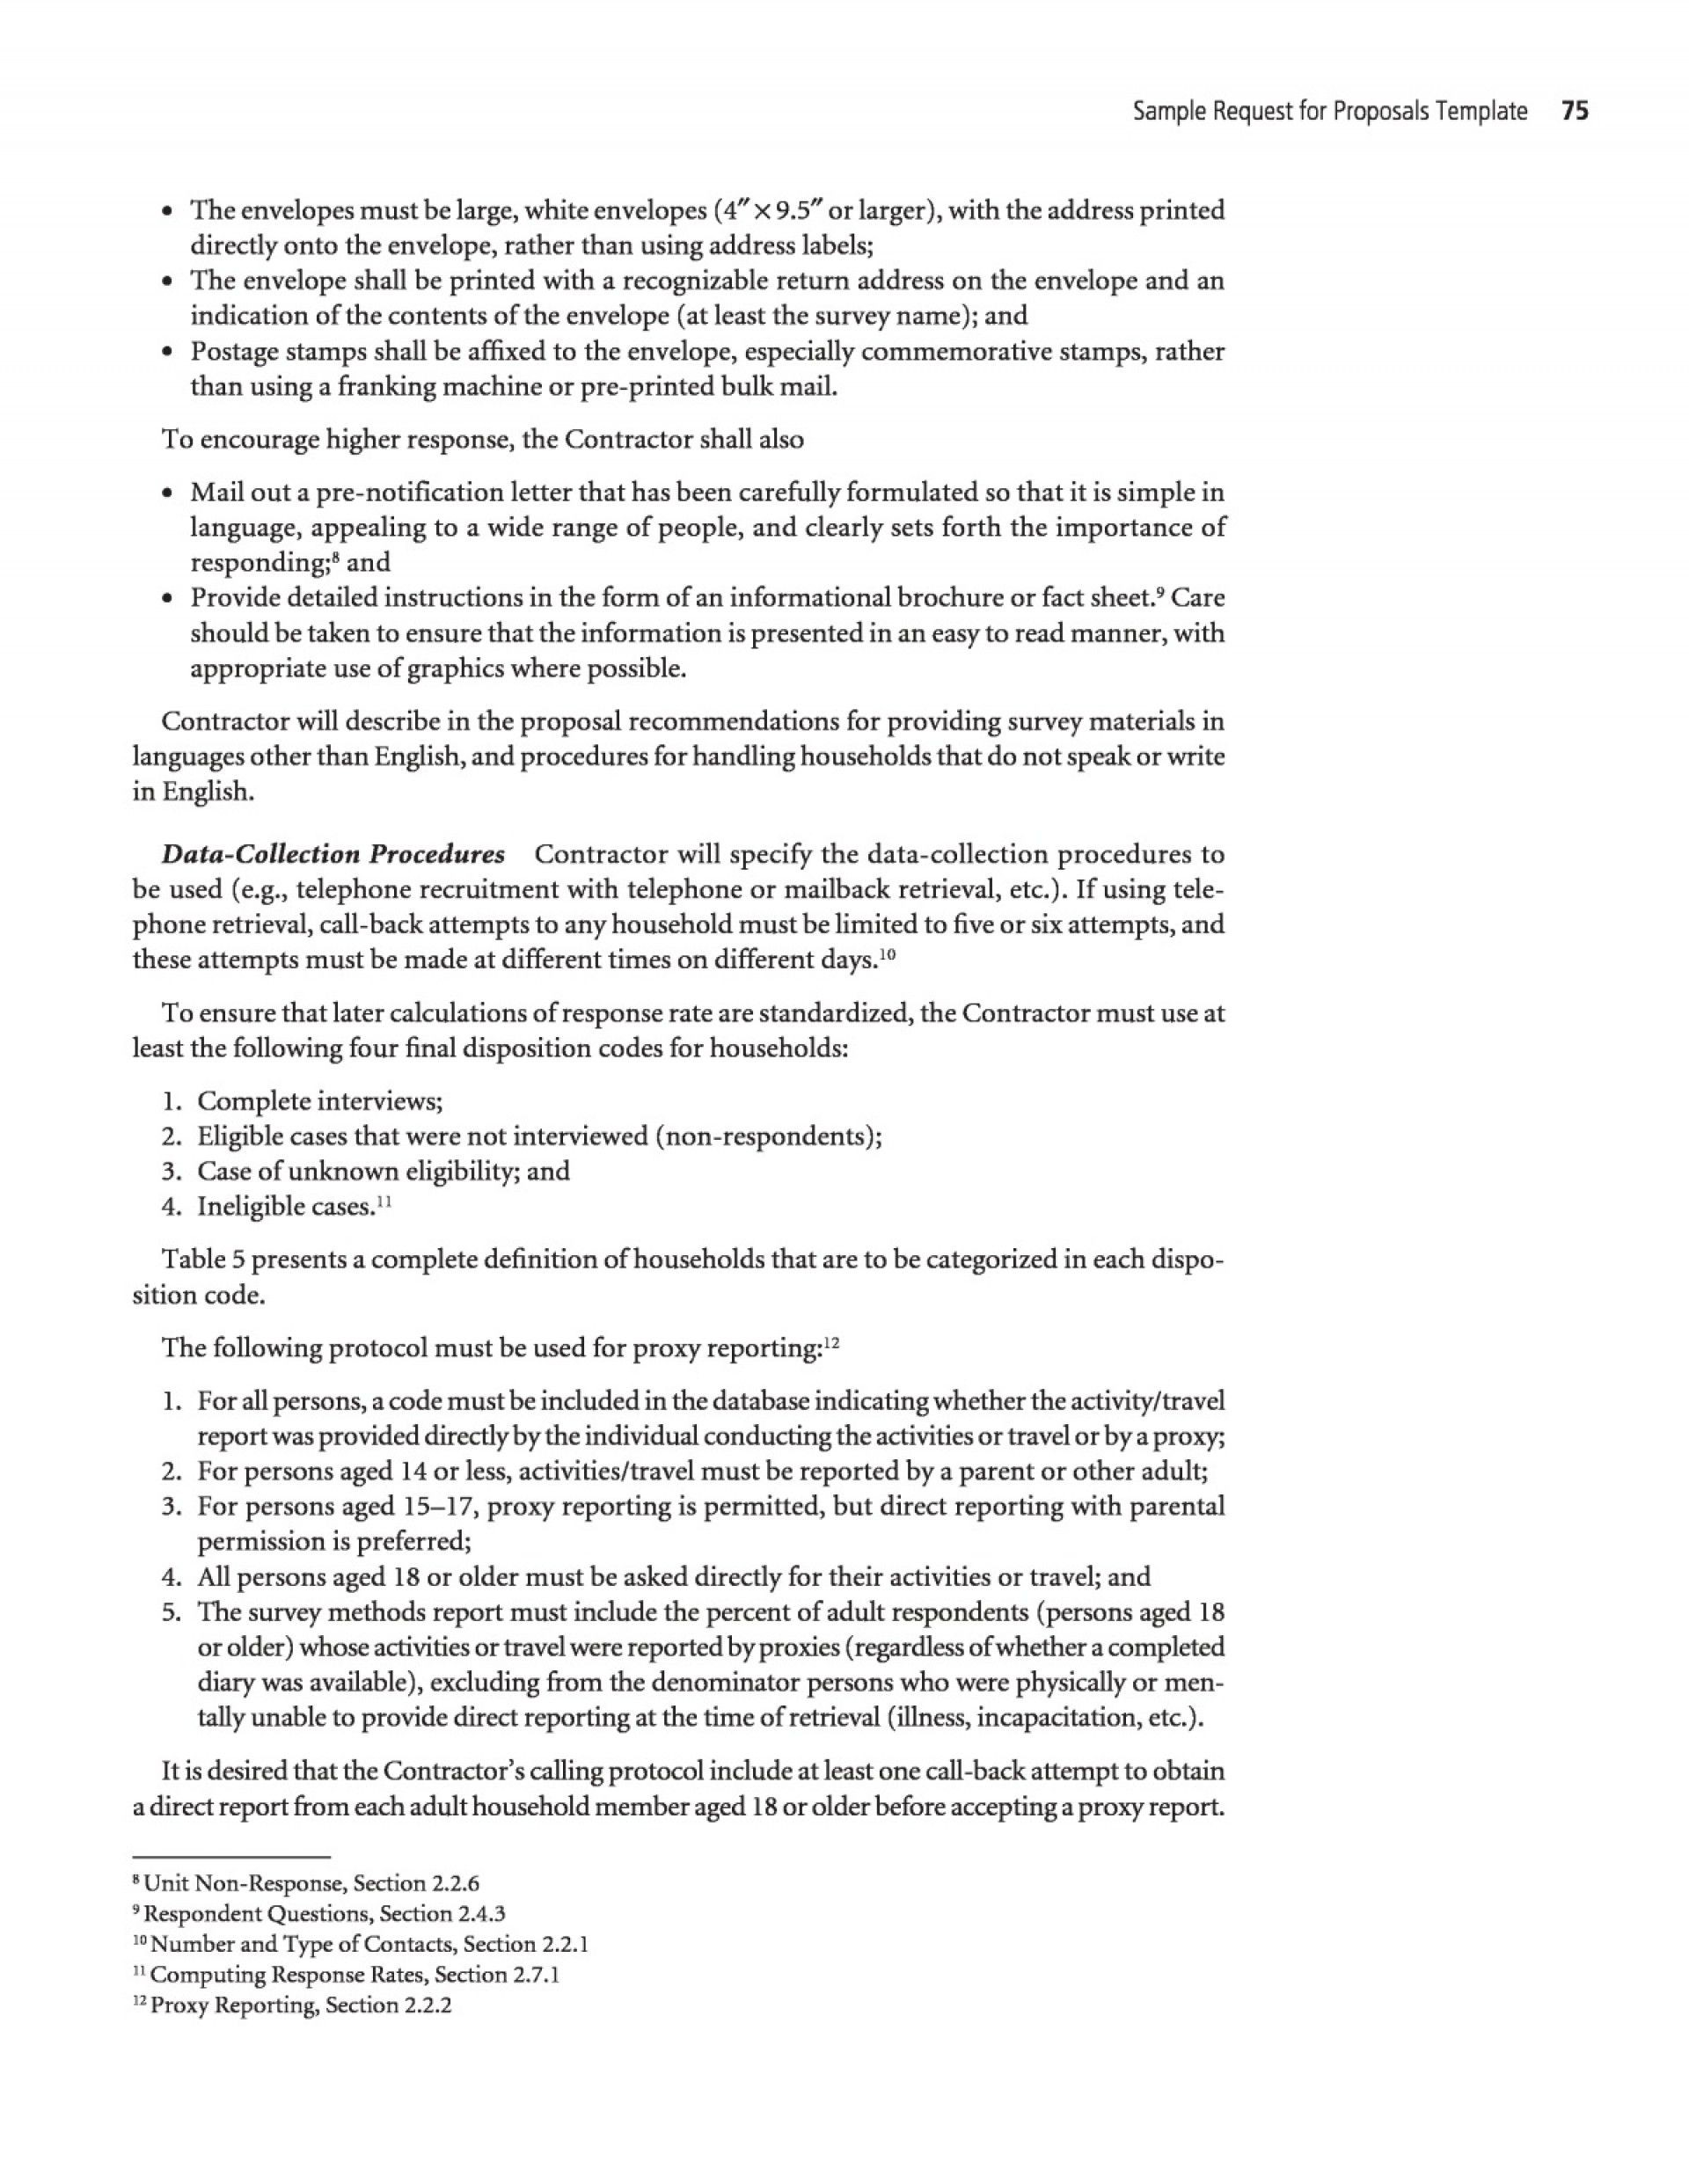 008 Unforgettable Request For Proposal Response Word Template Sample 1920